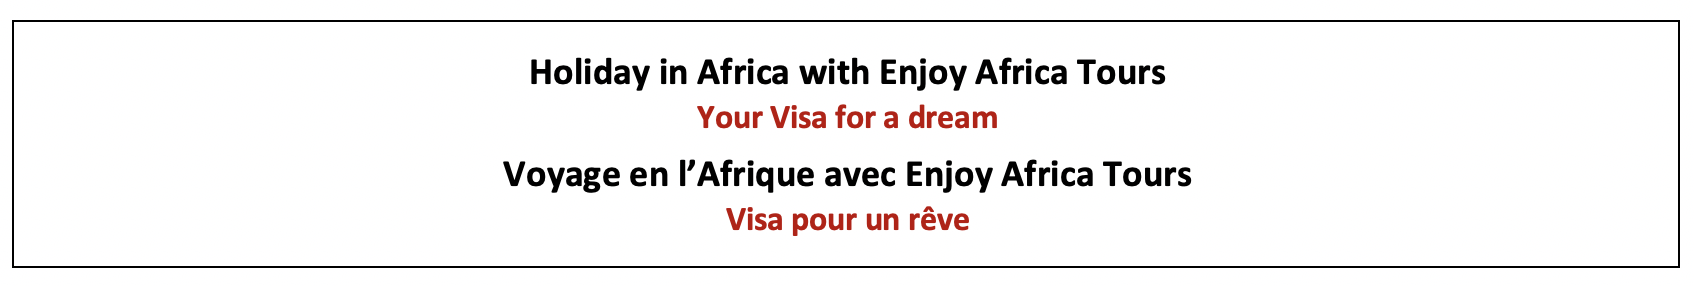 Enjoy Africa Tours Holiday in Africa Visa